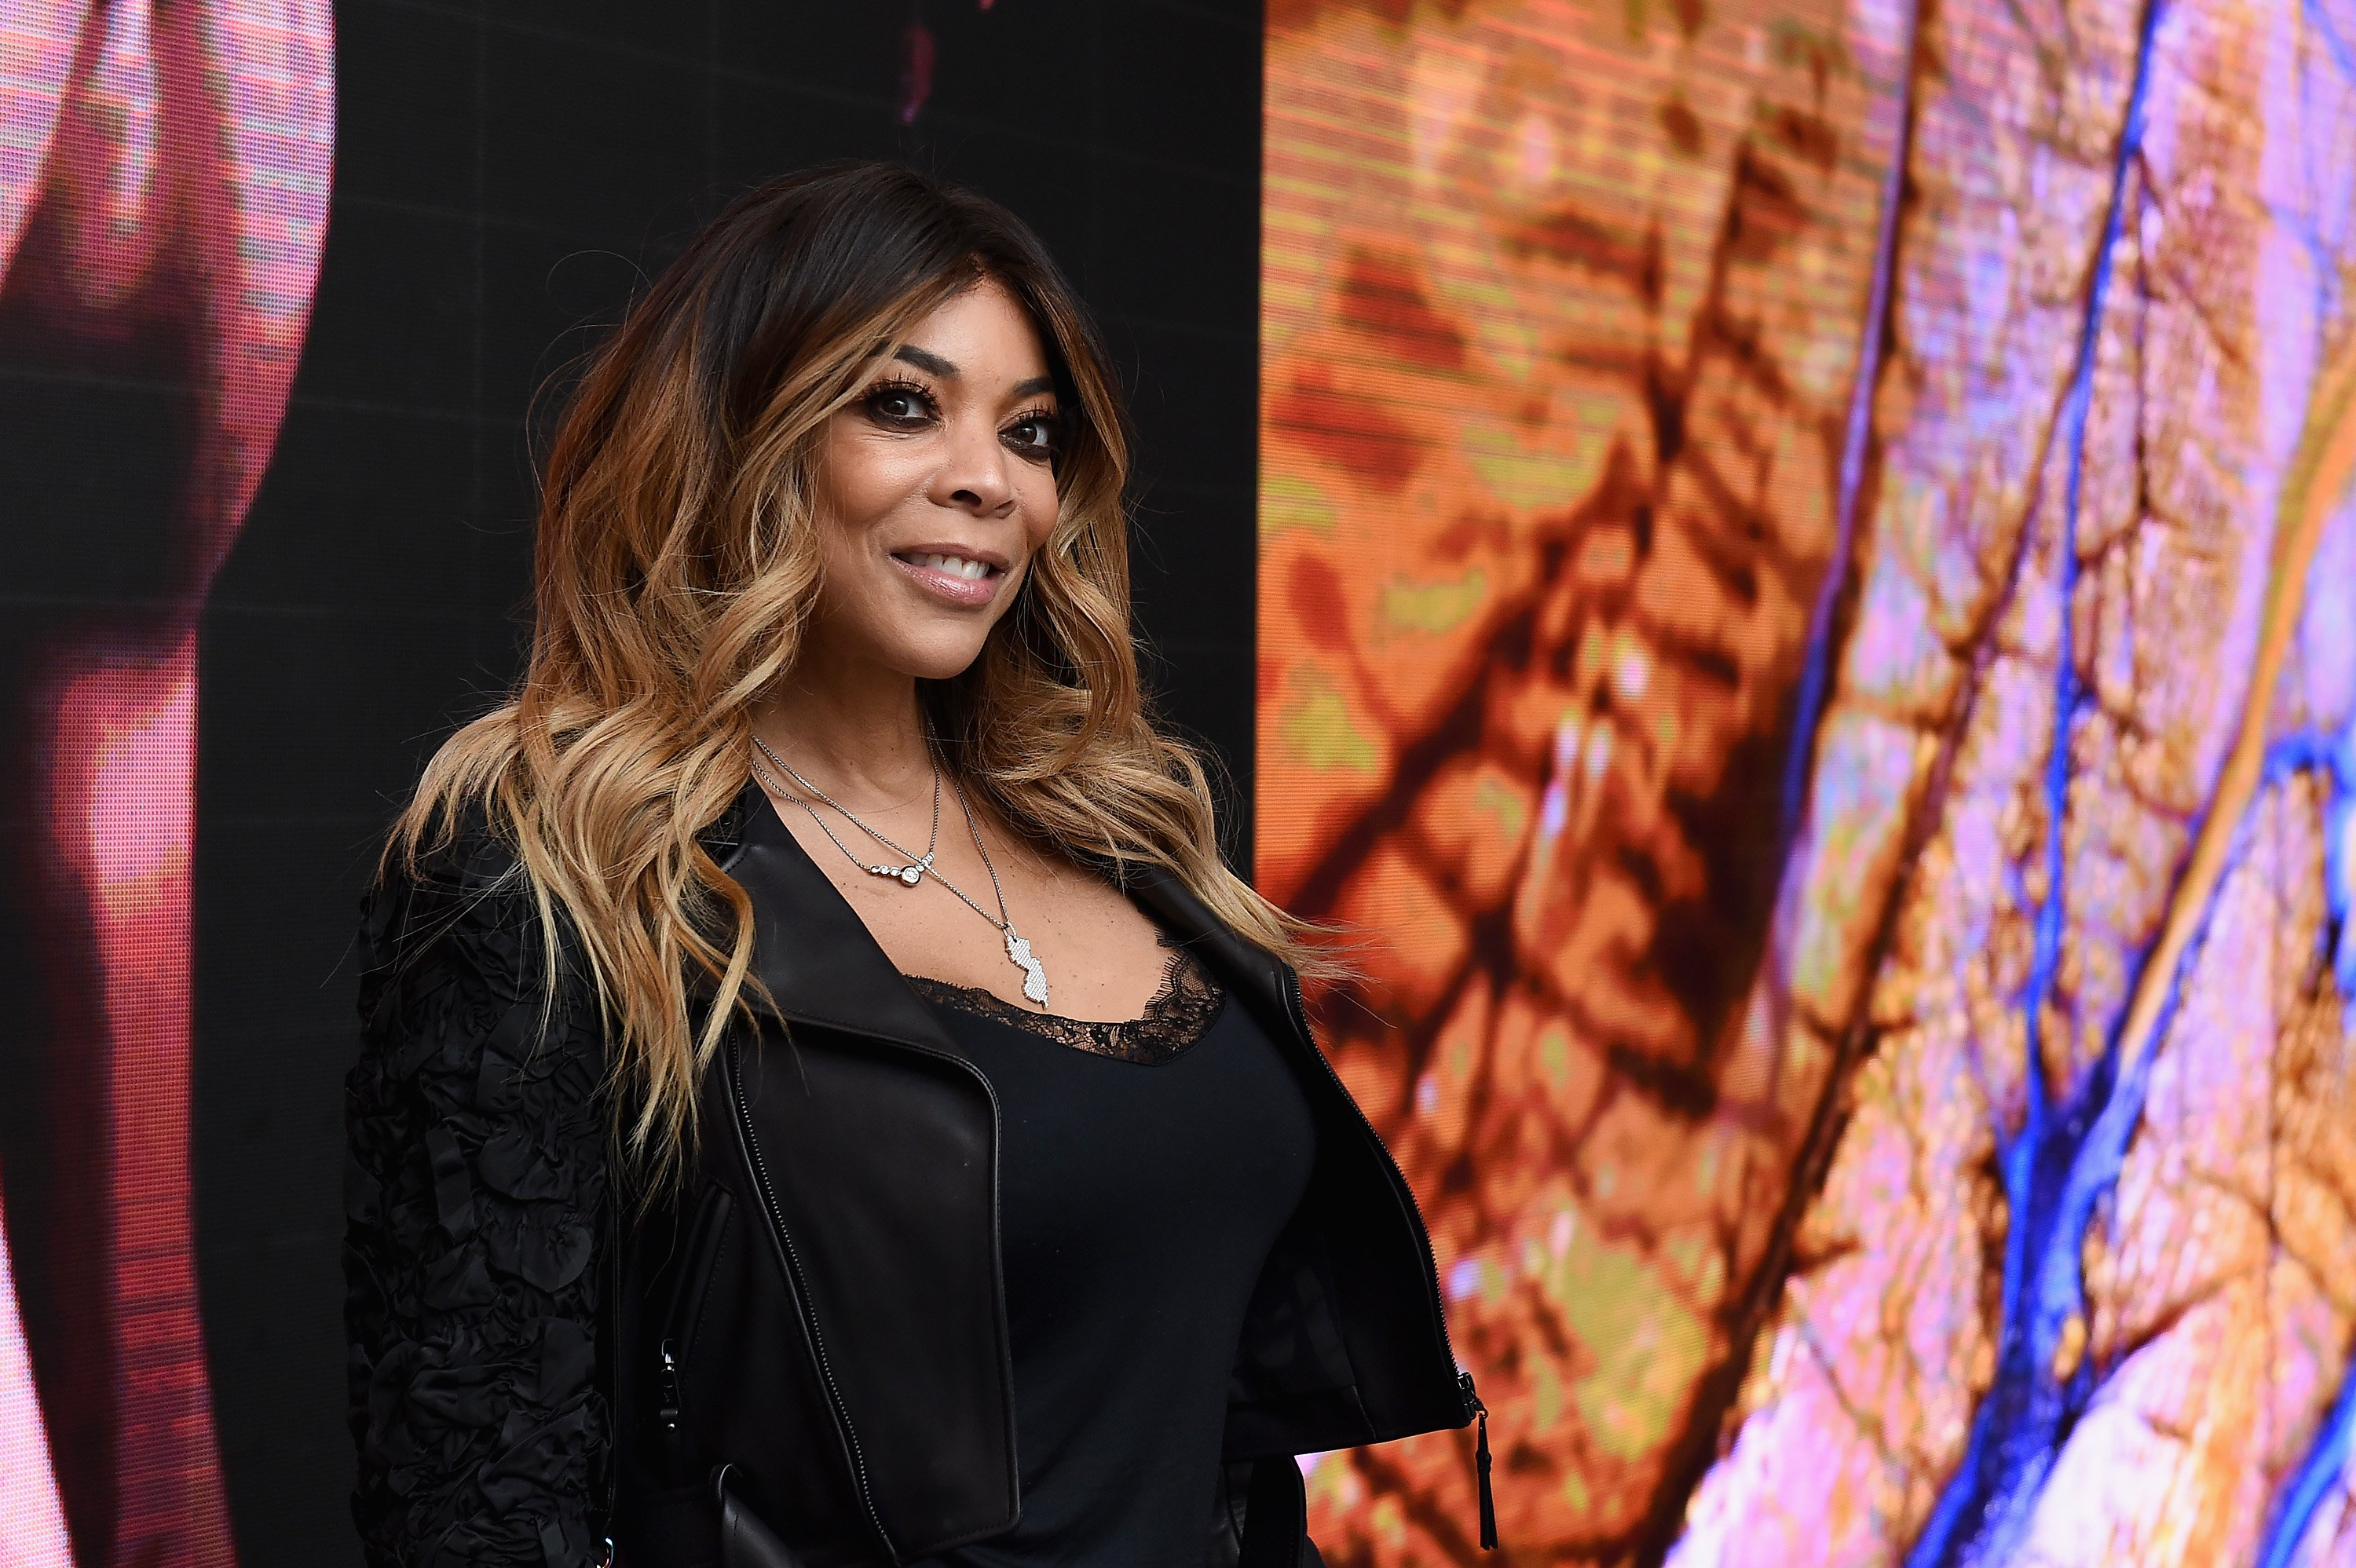 Wendy Williams smiles and wears a black outfit